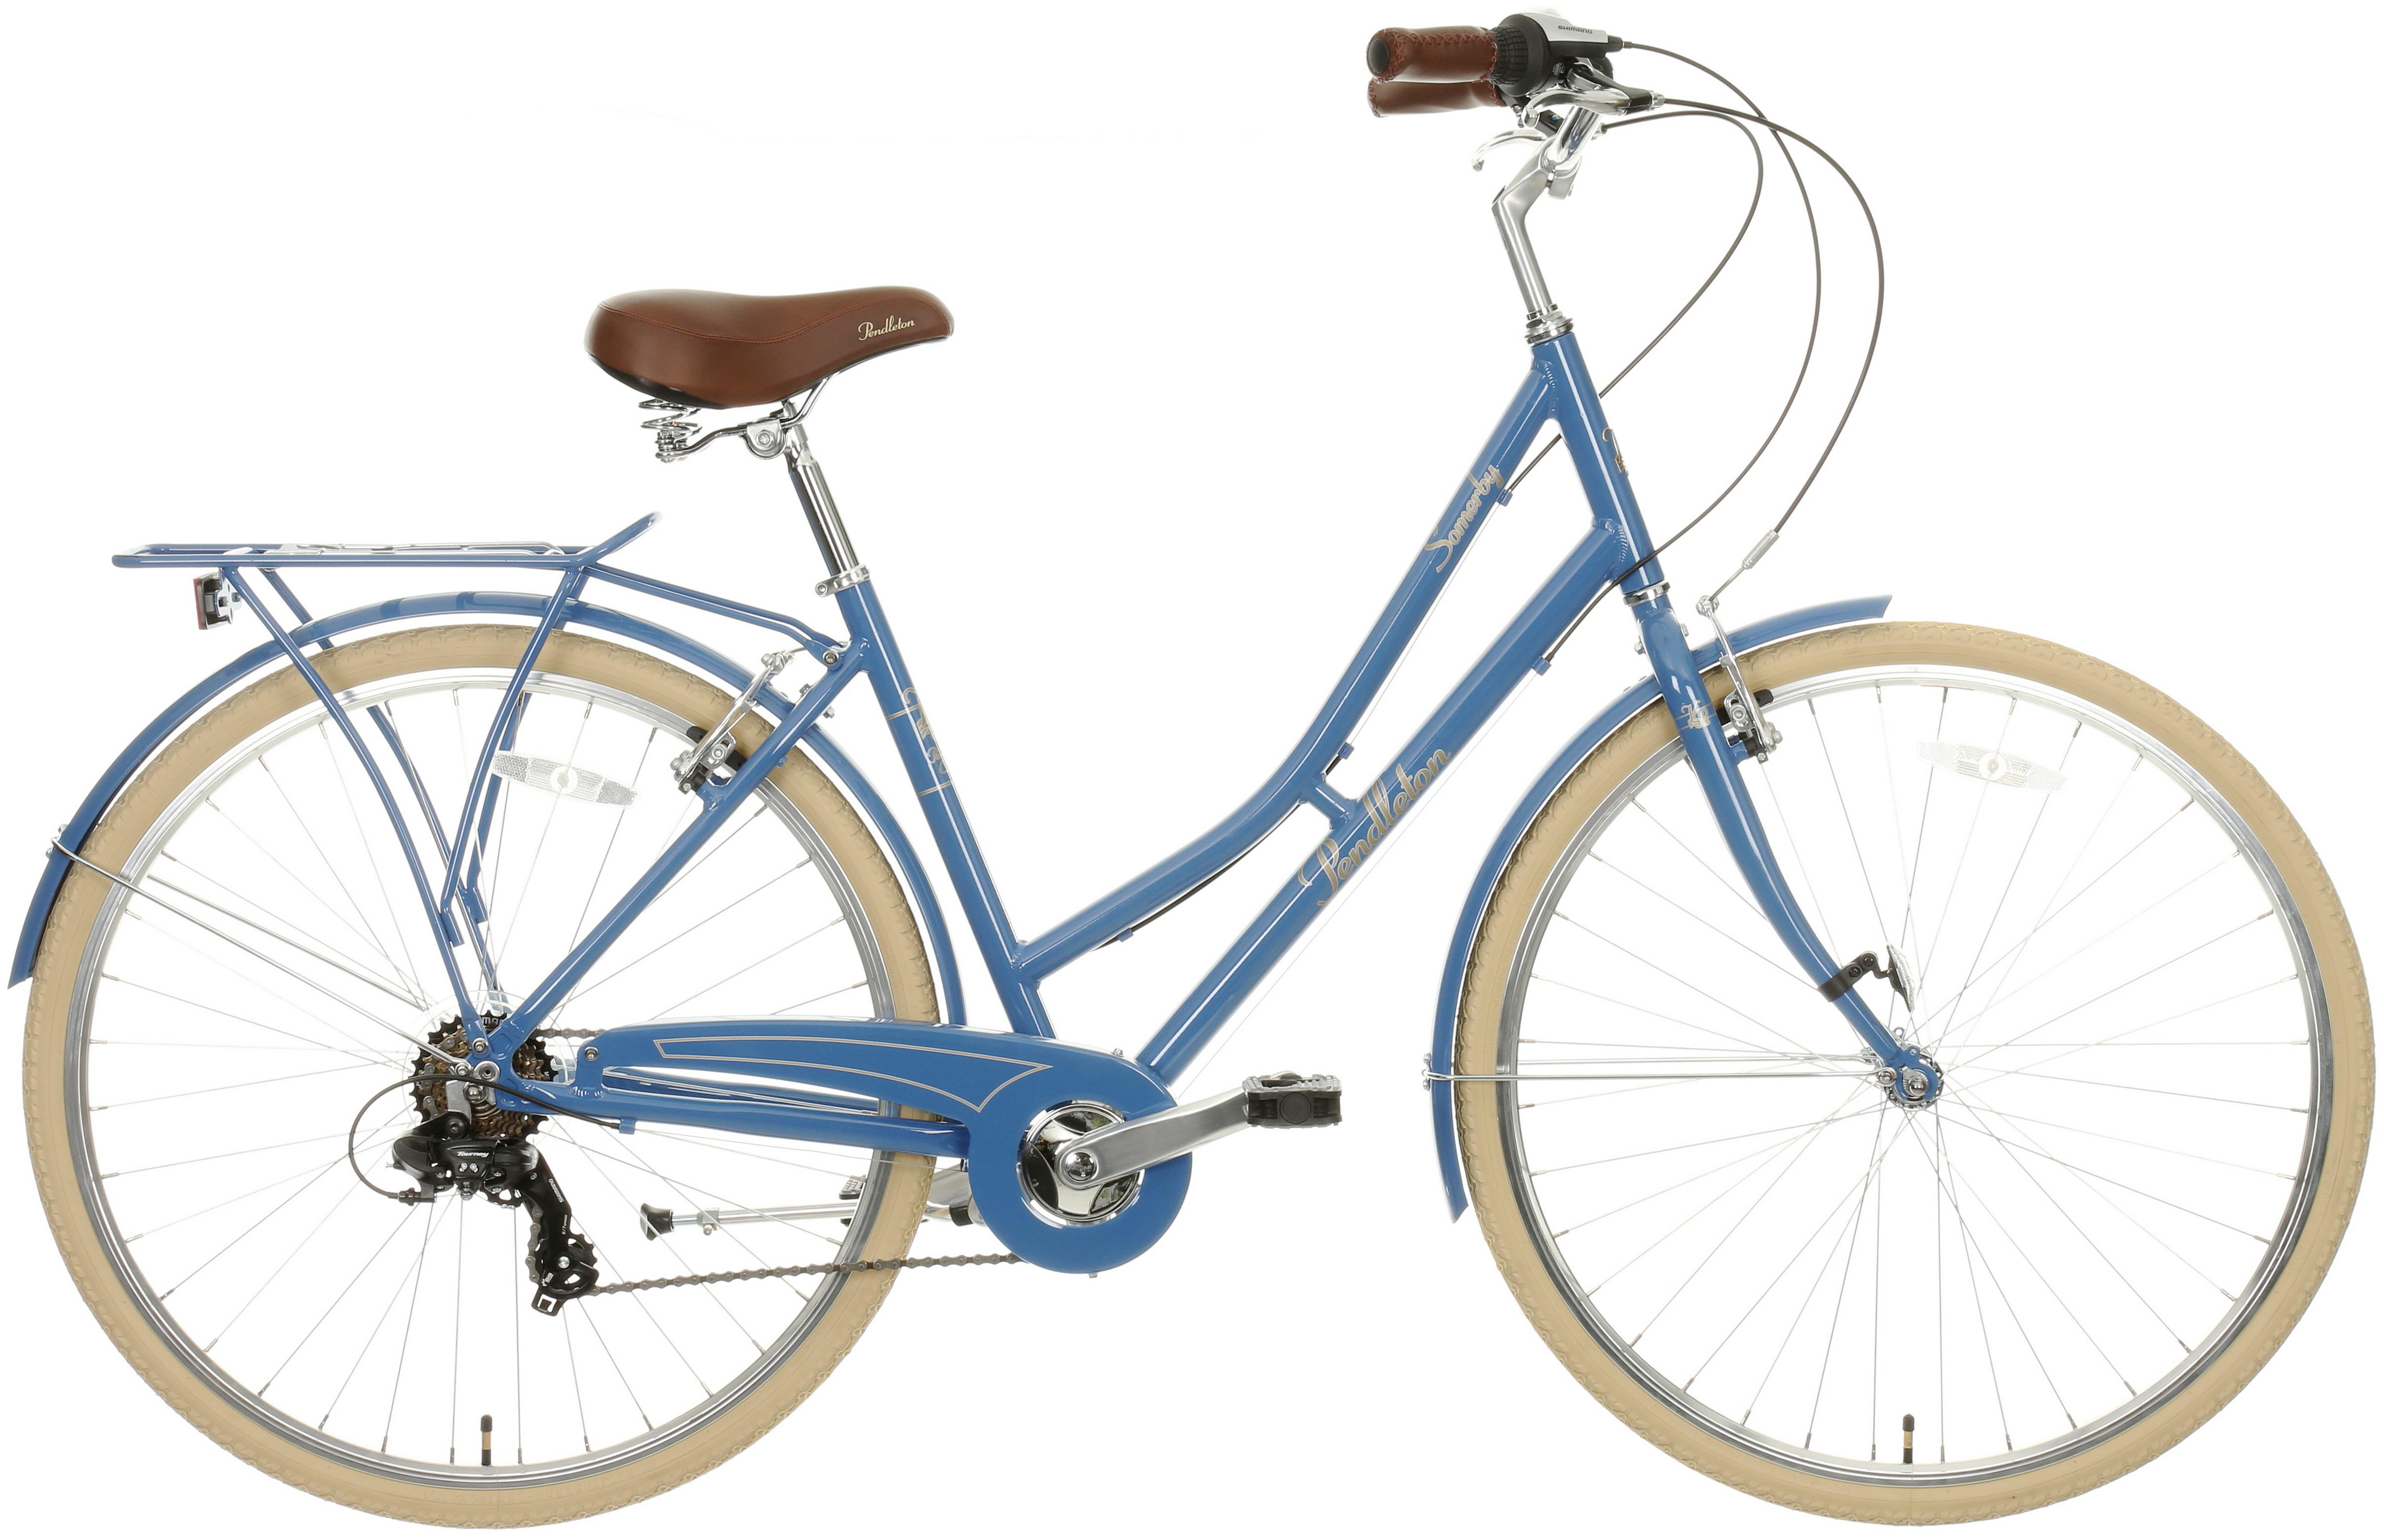 Pendleton Somerby Hybrid Bike - Denim Blue 19 inch